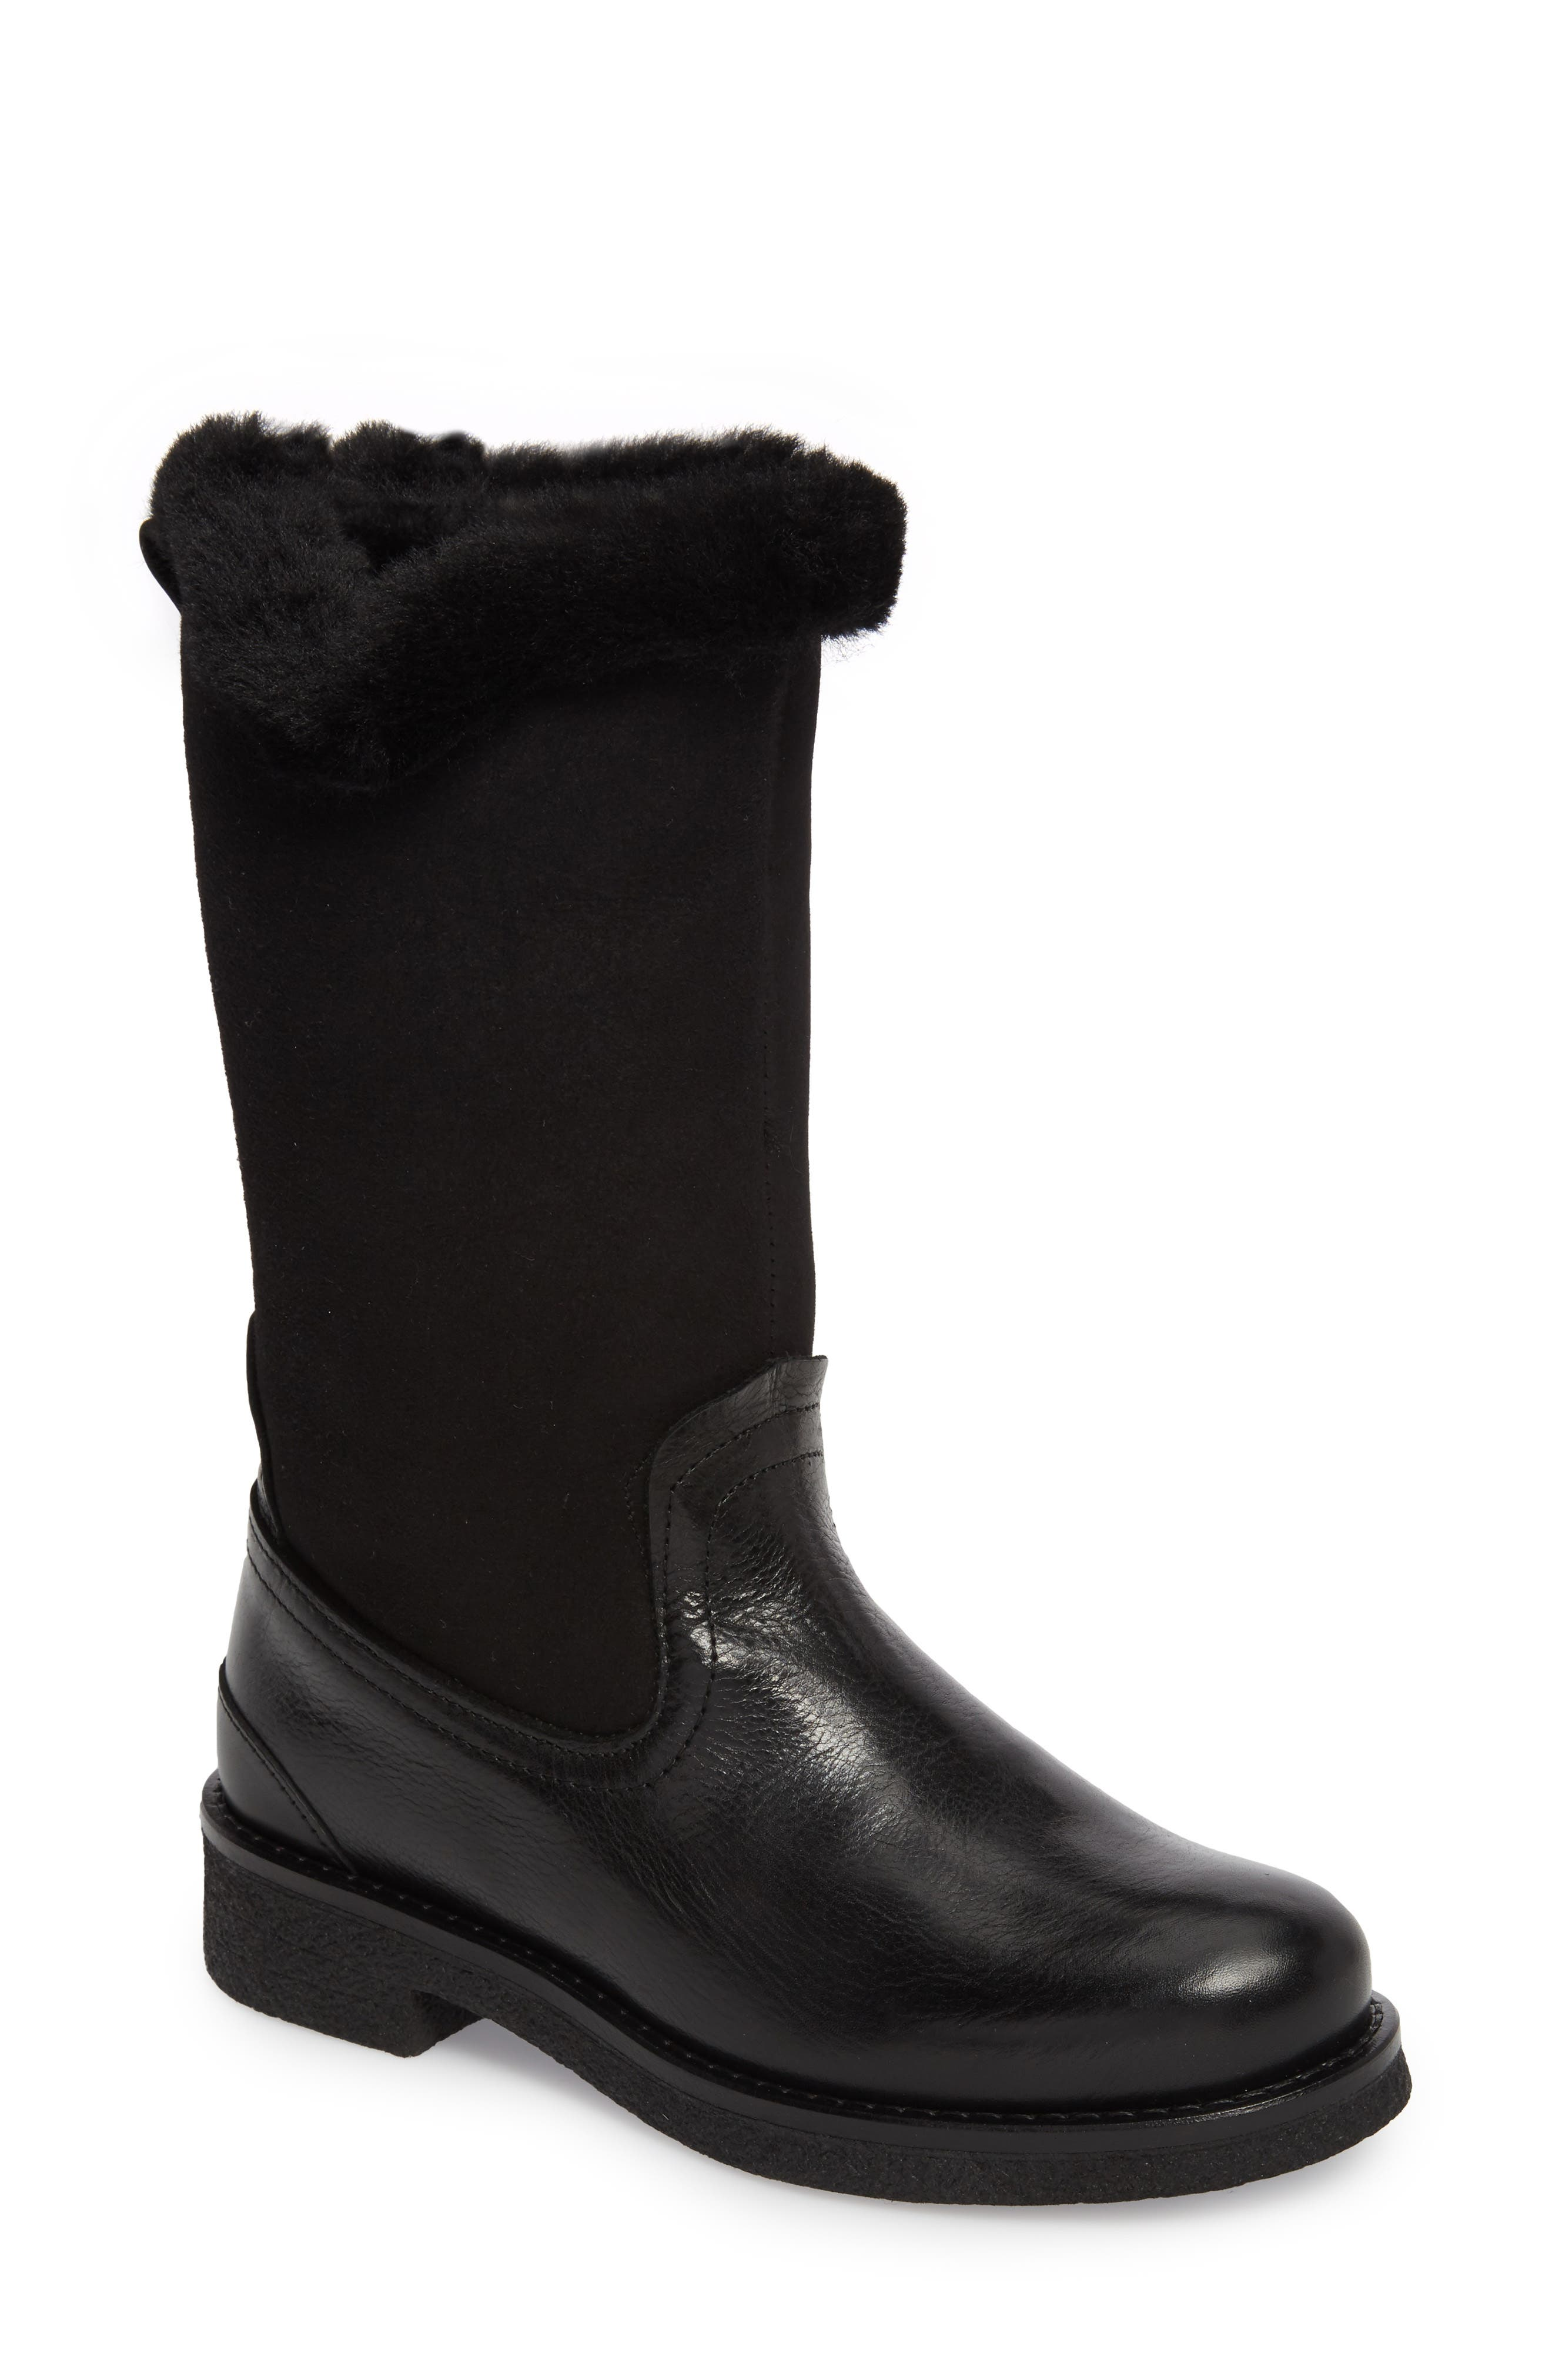 Amarillo Waterproof Insulated Snow Boot,                         Main,                         color, Black Fur Leather